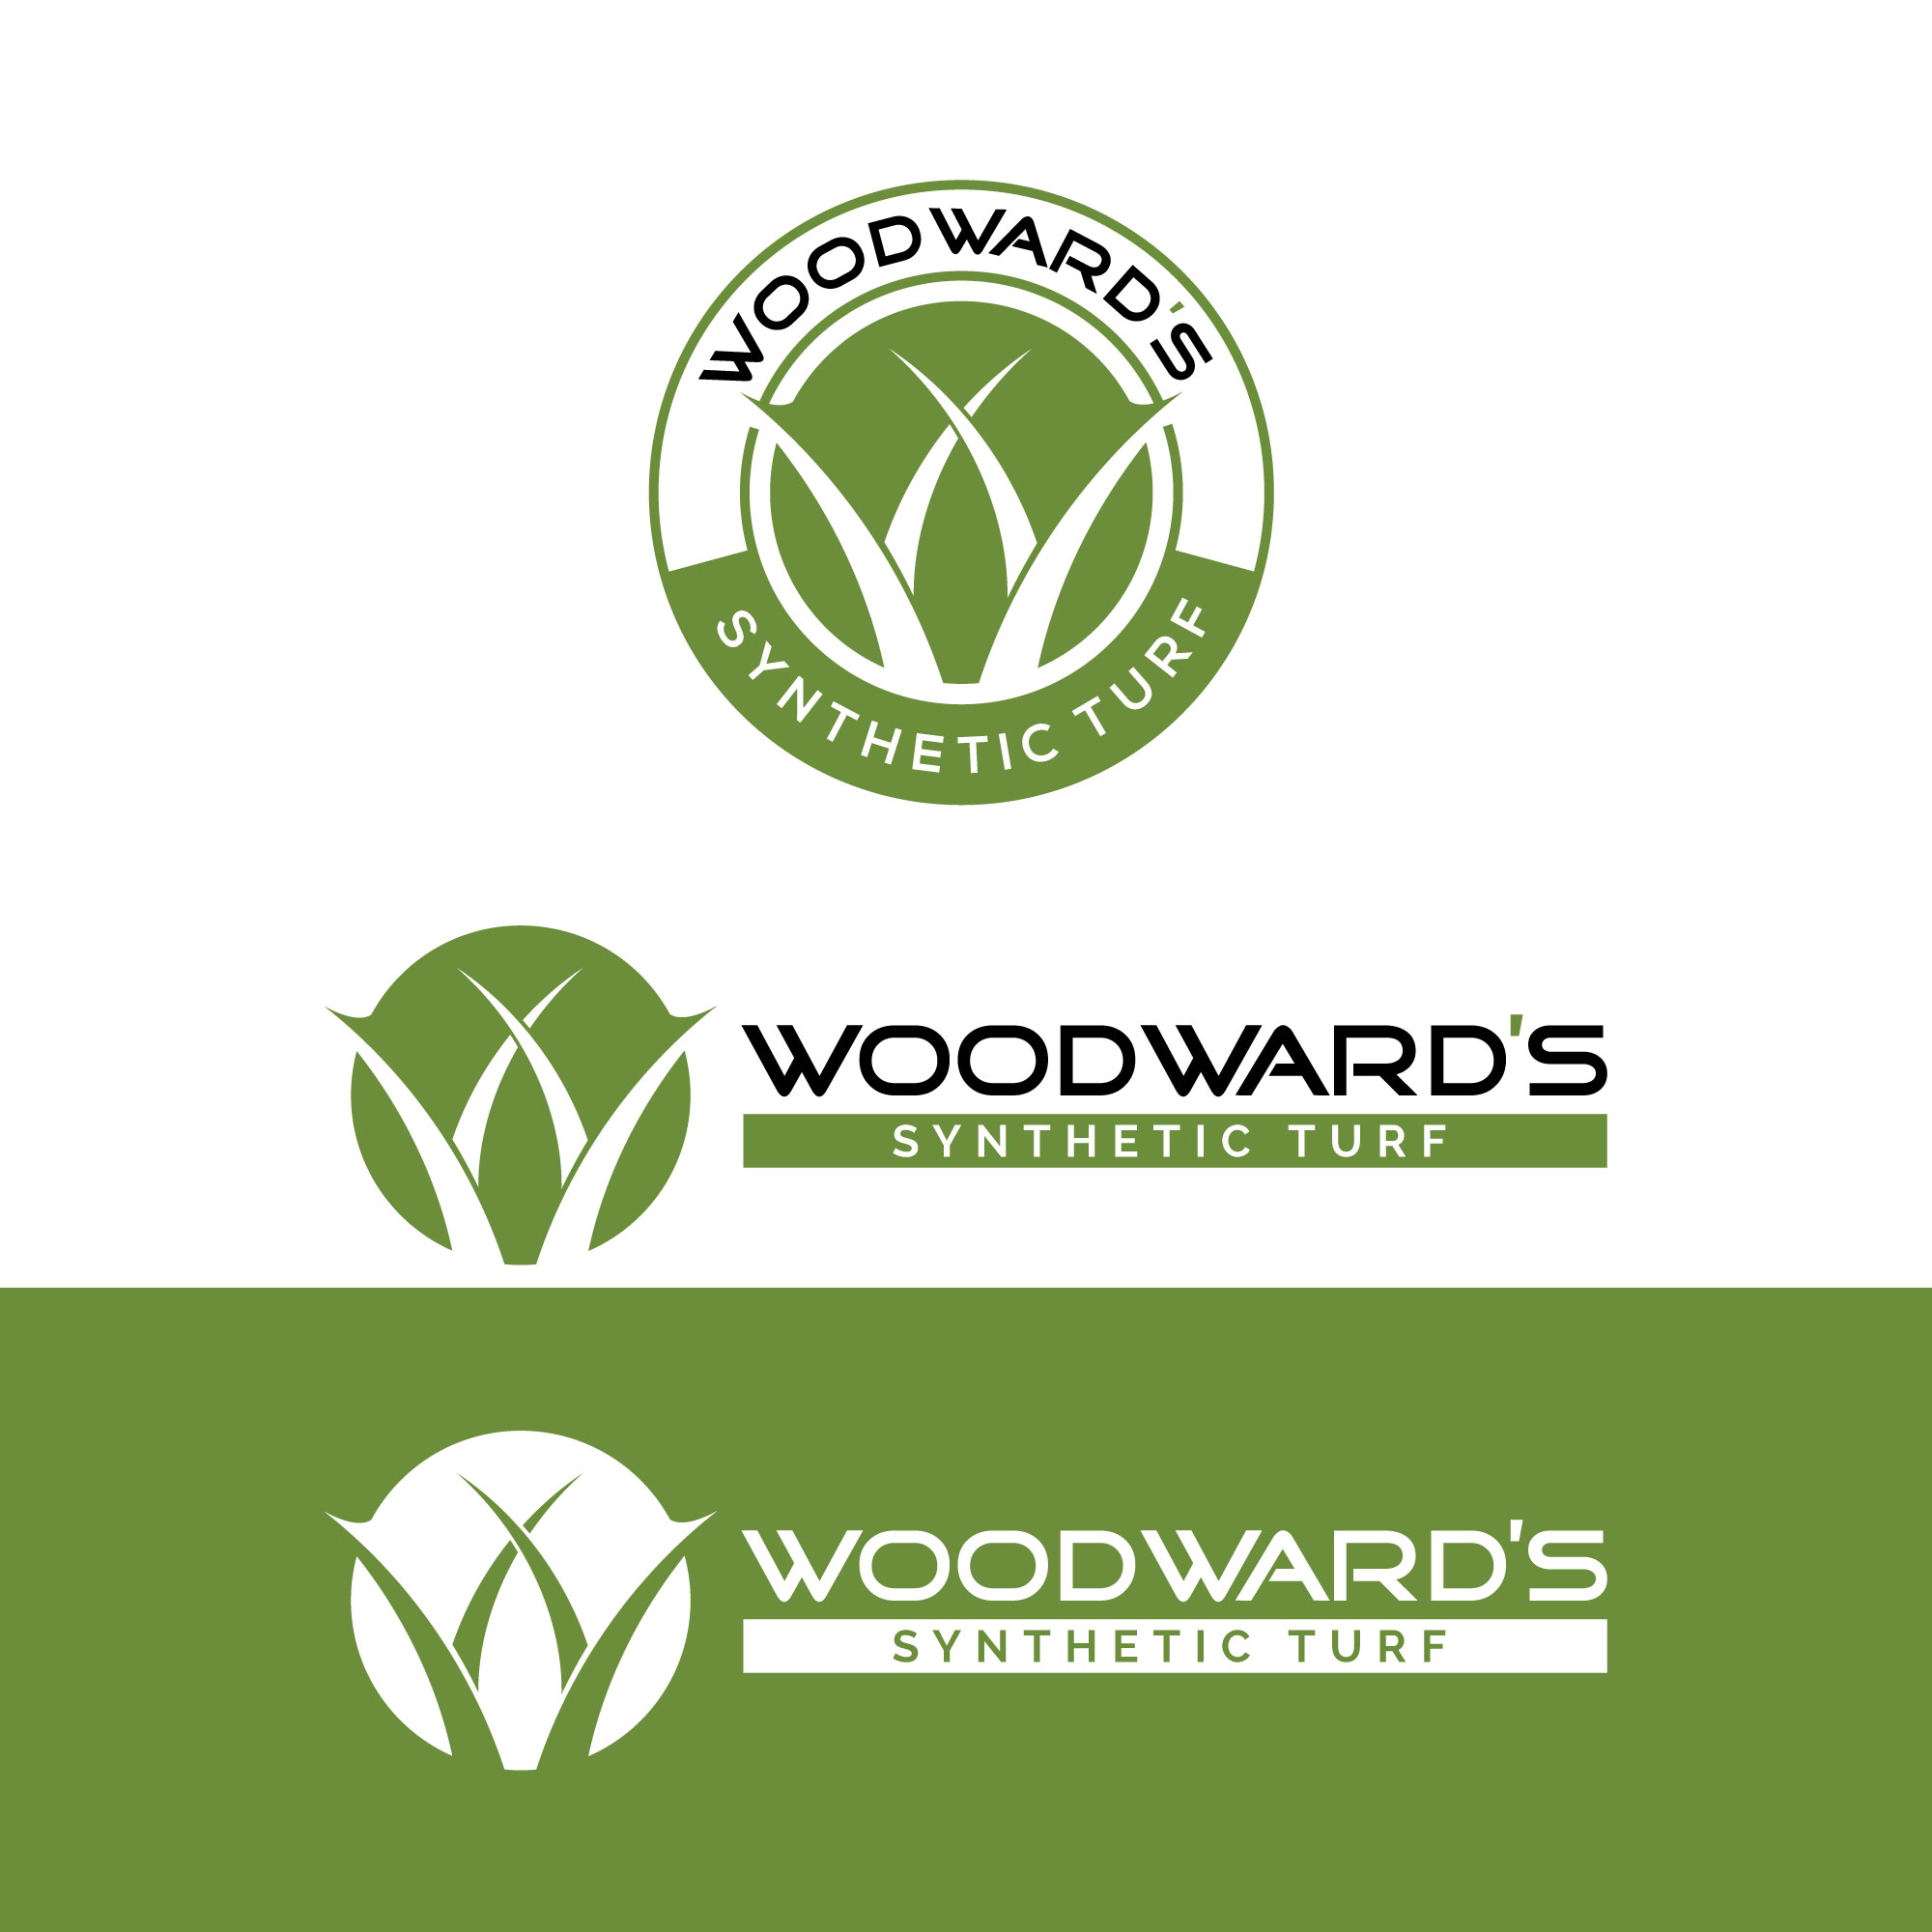 Logo Design by Roza Apostolska - Entry No. 70 in the Logo Design Contest Artistic Logo Design for Woodward's Synthetic Turf.